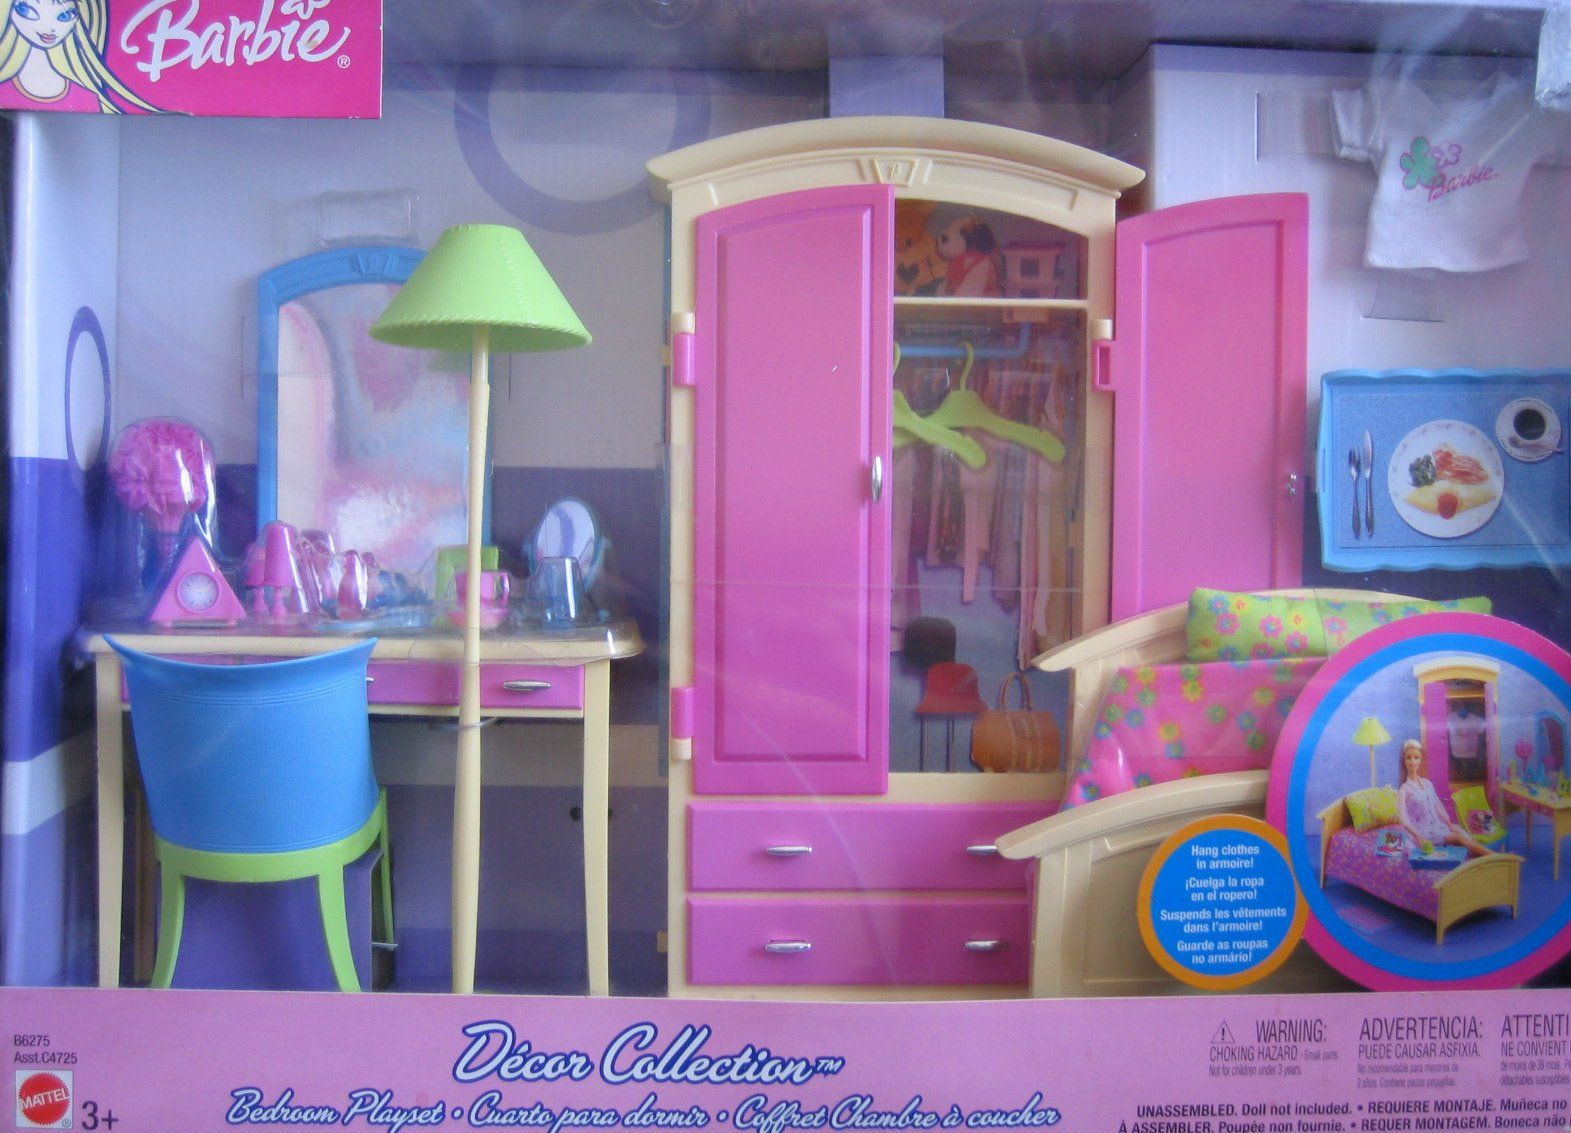 Barbie Bedroom In A Box: Amazon.com: Barbie Decor Collection BEDROOM Playset